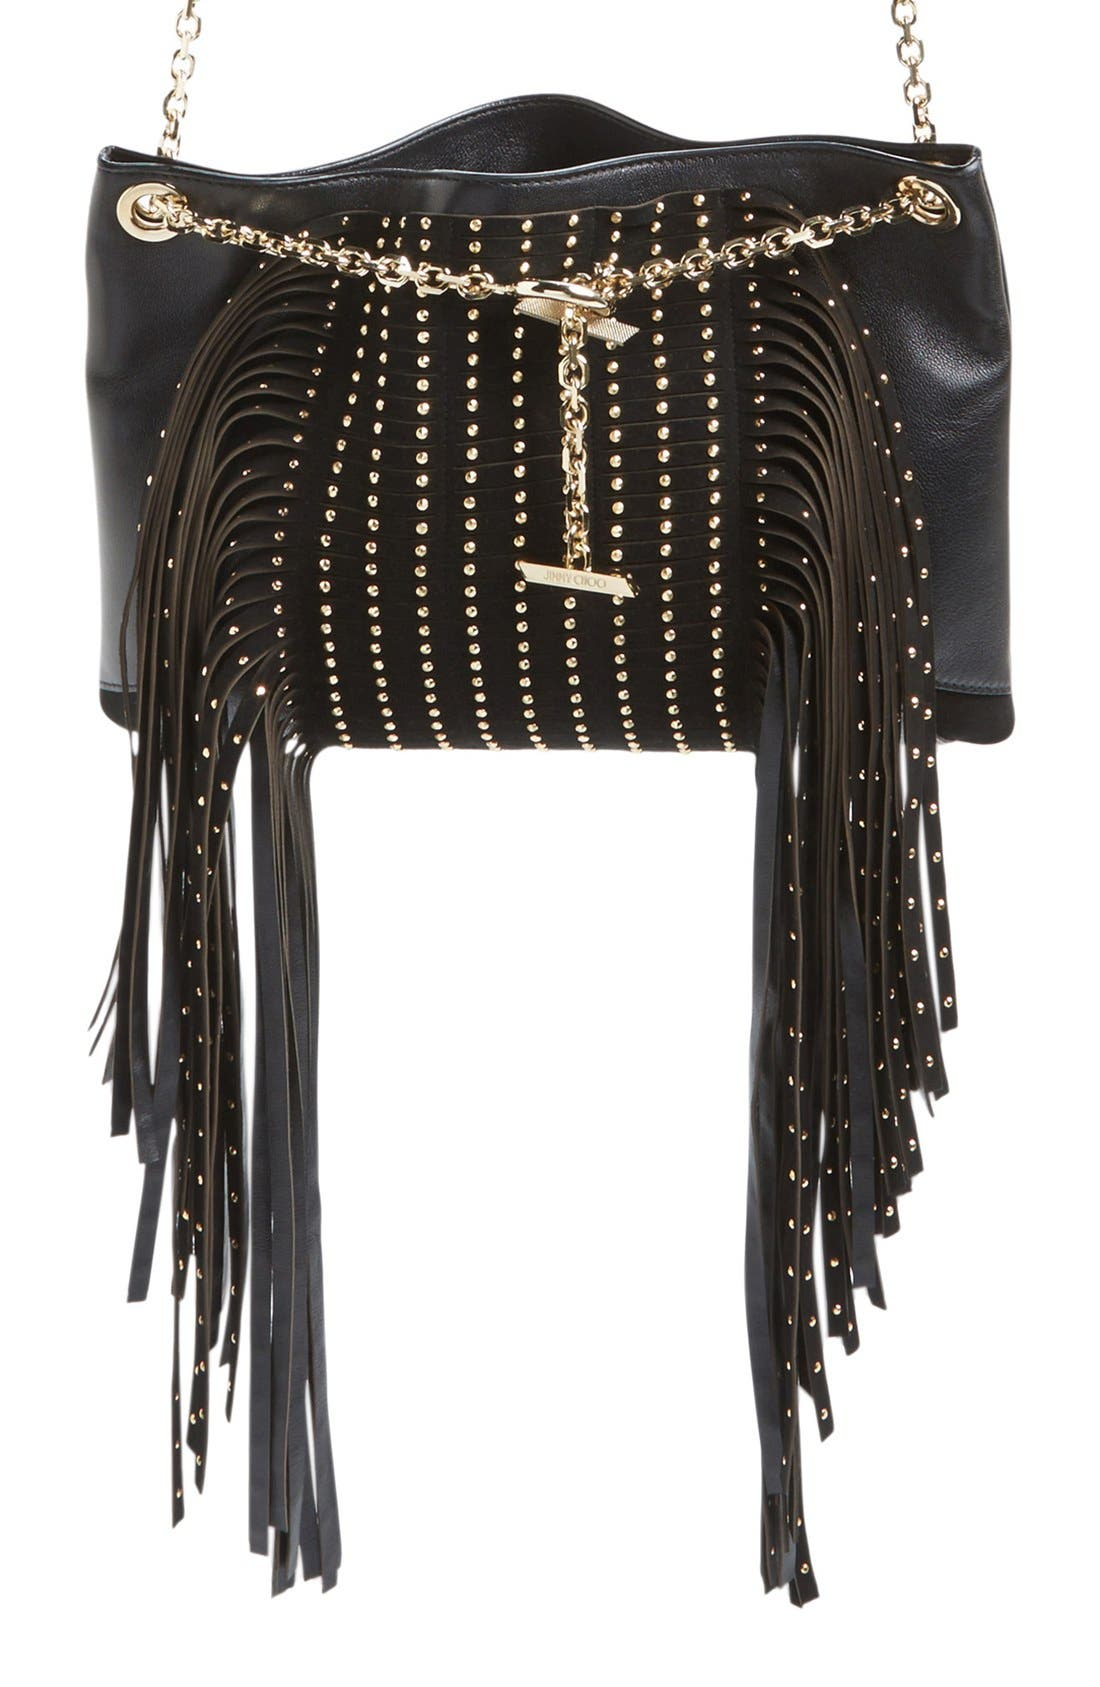 Alternate Image 1 Selected - Jimmy Choo 'Alexia' Fringe Crossbody Bag